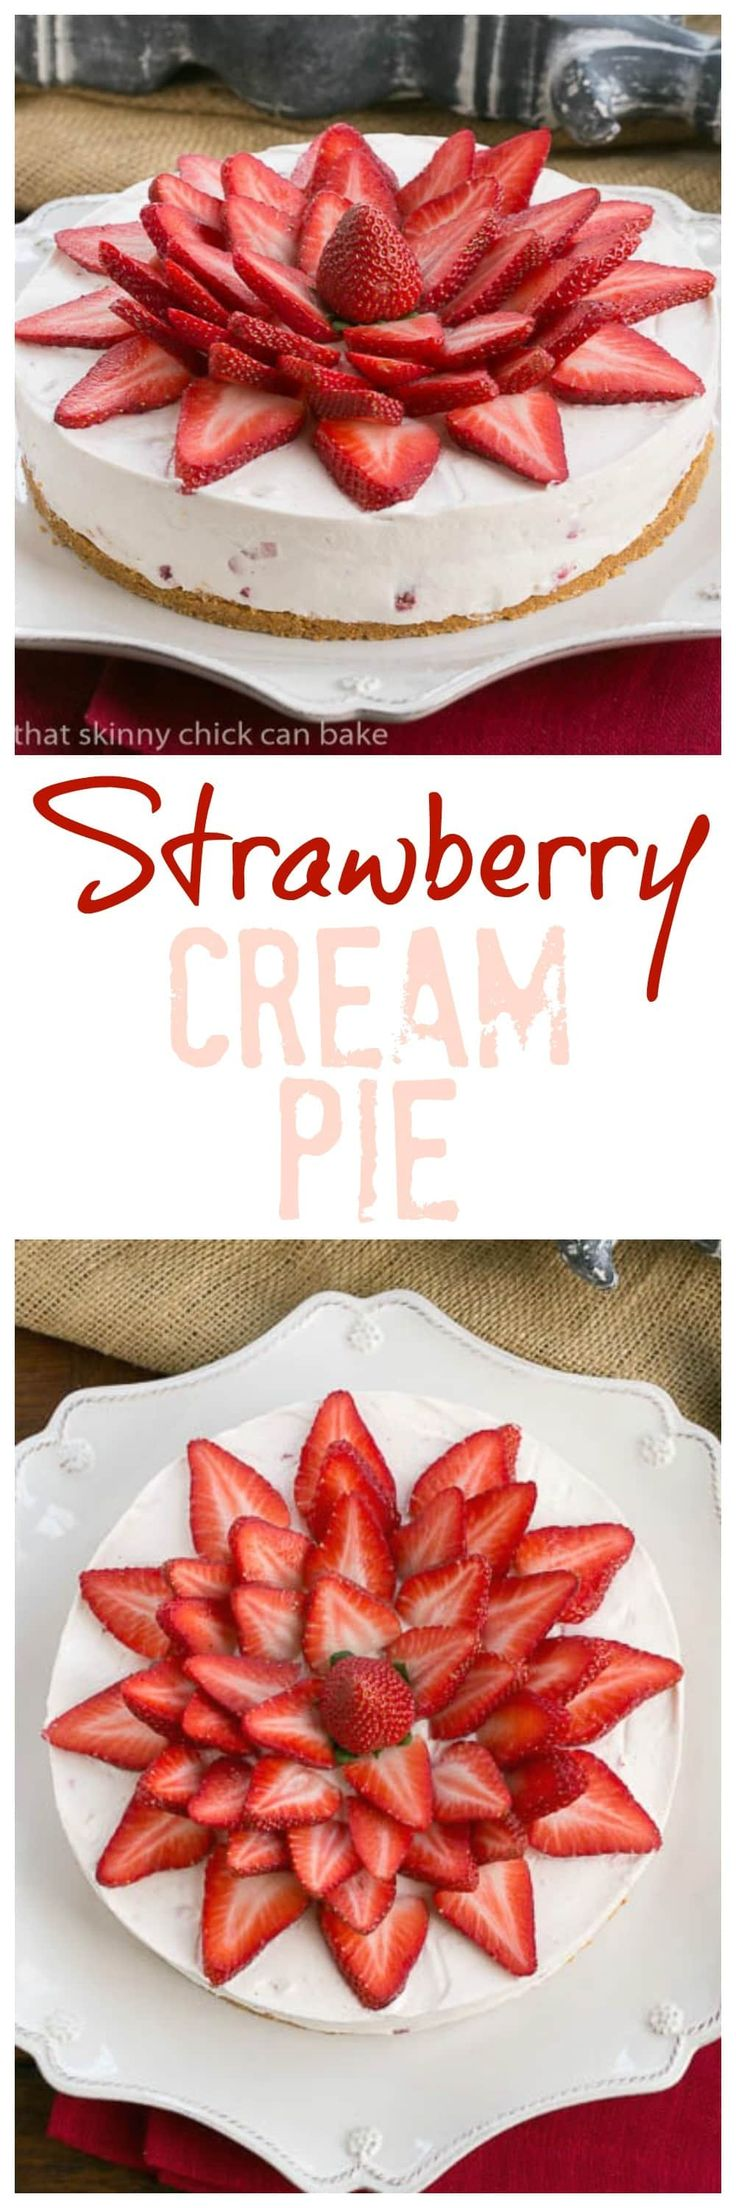 Strawberry Vanilla Cream Pie | An exquisite strawberry and cream dessert! @lizzydo